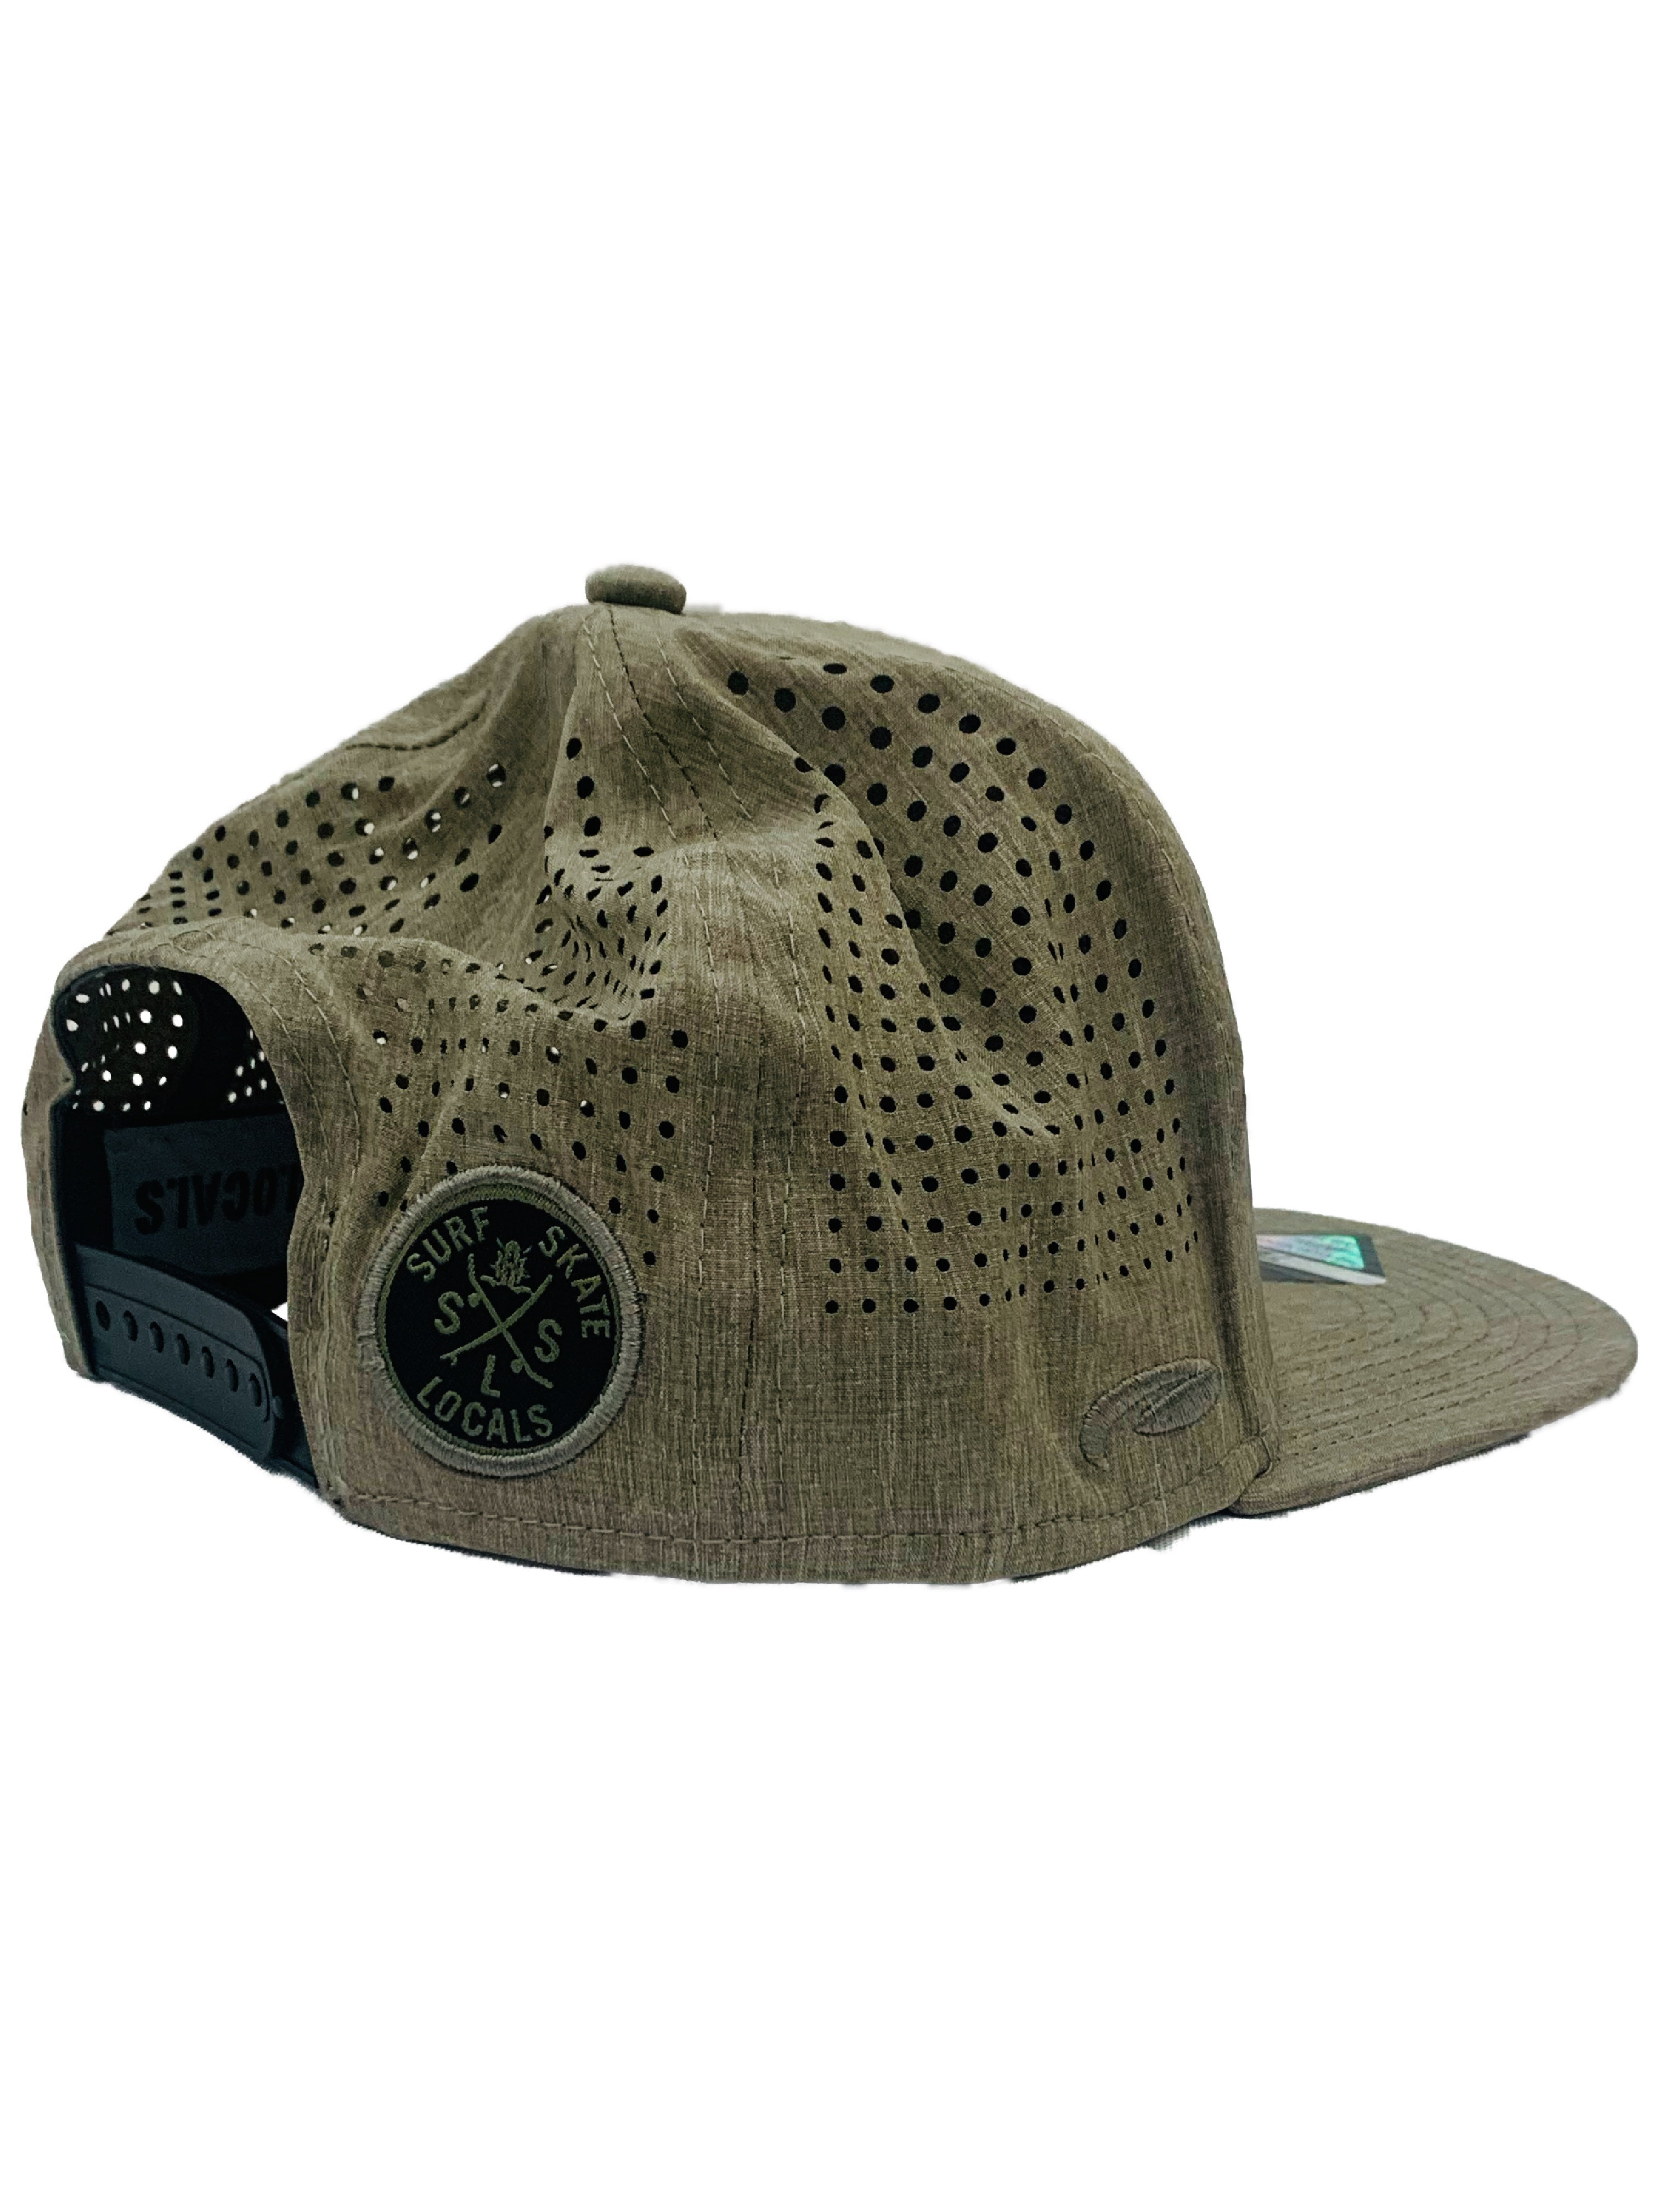 LOCALS 3D LOGO TRITECH WICKING SPF30 4-WAY STRETCH SNAPBACK HTR. OLIVE